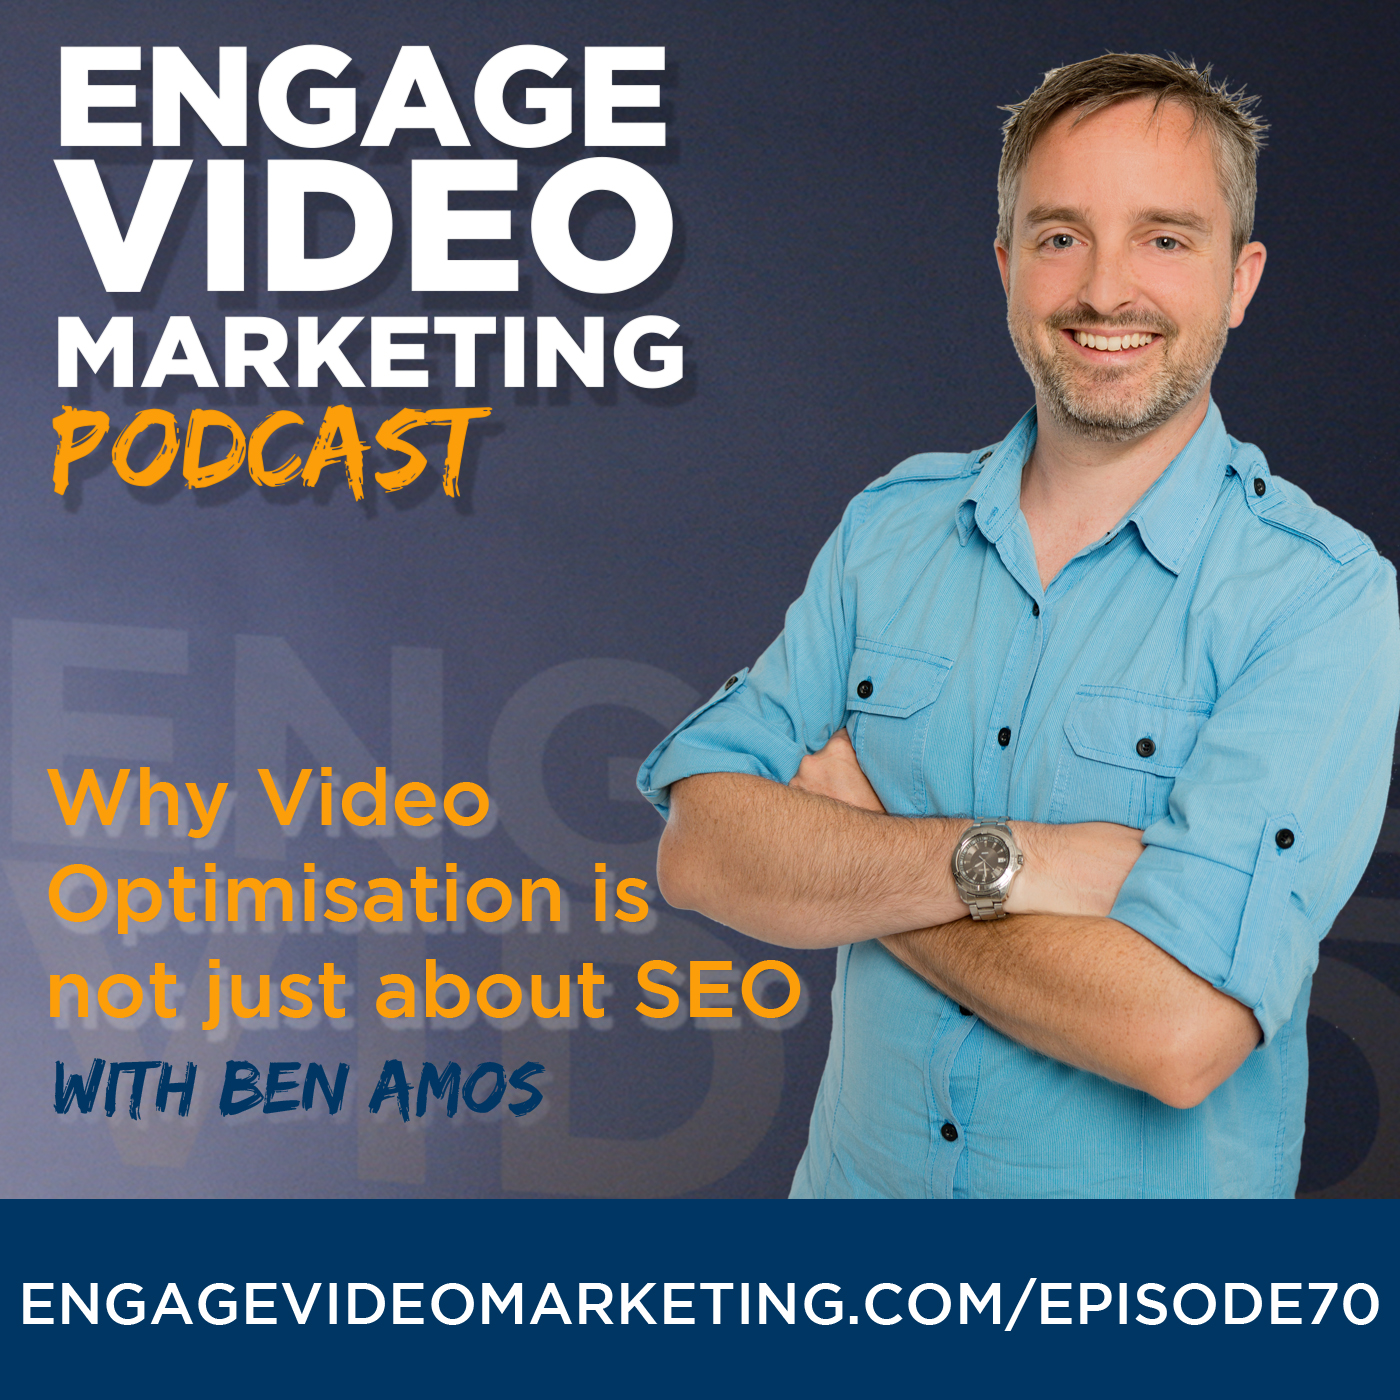 Why Video Optimisation is not just about SEO